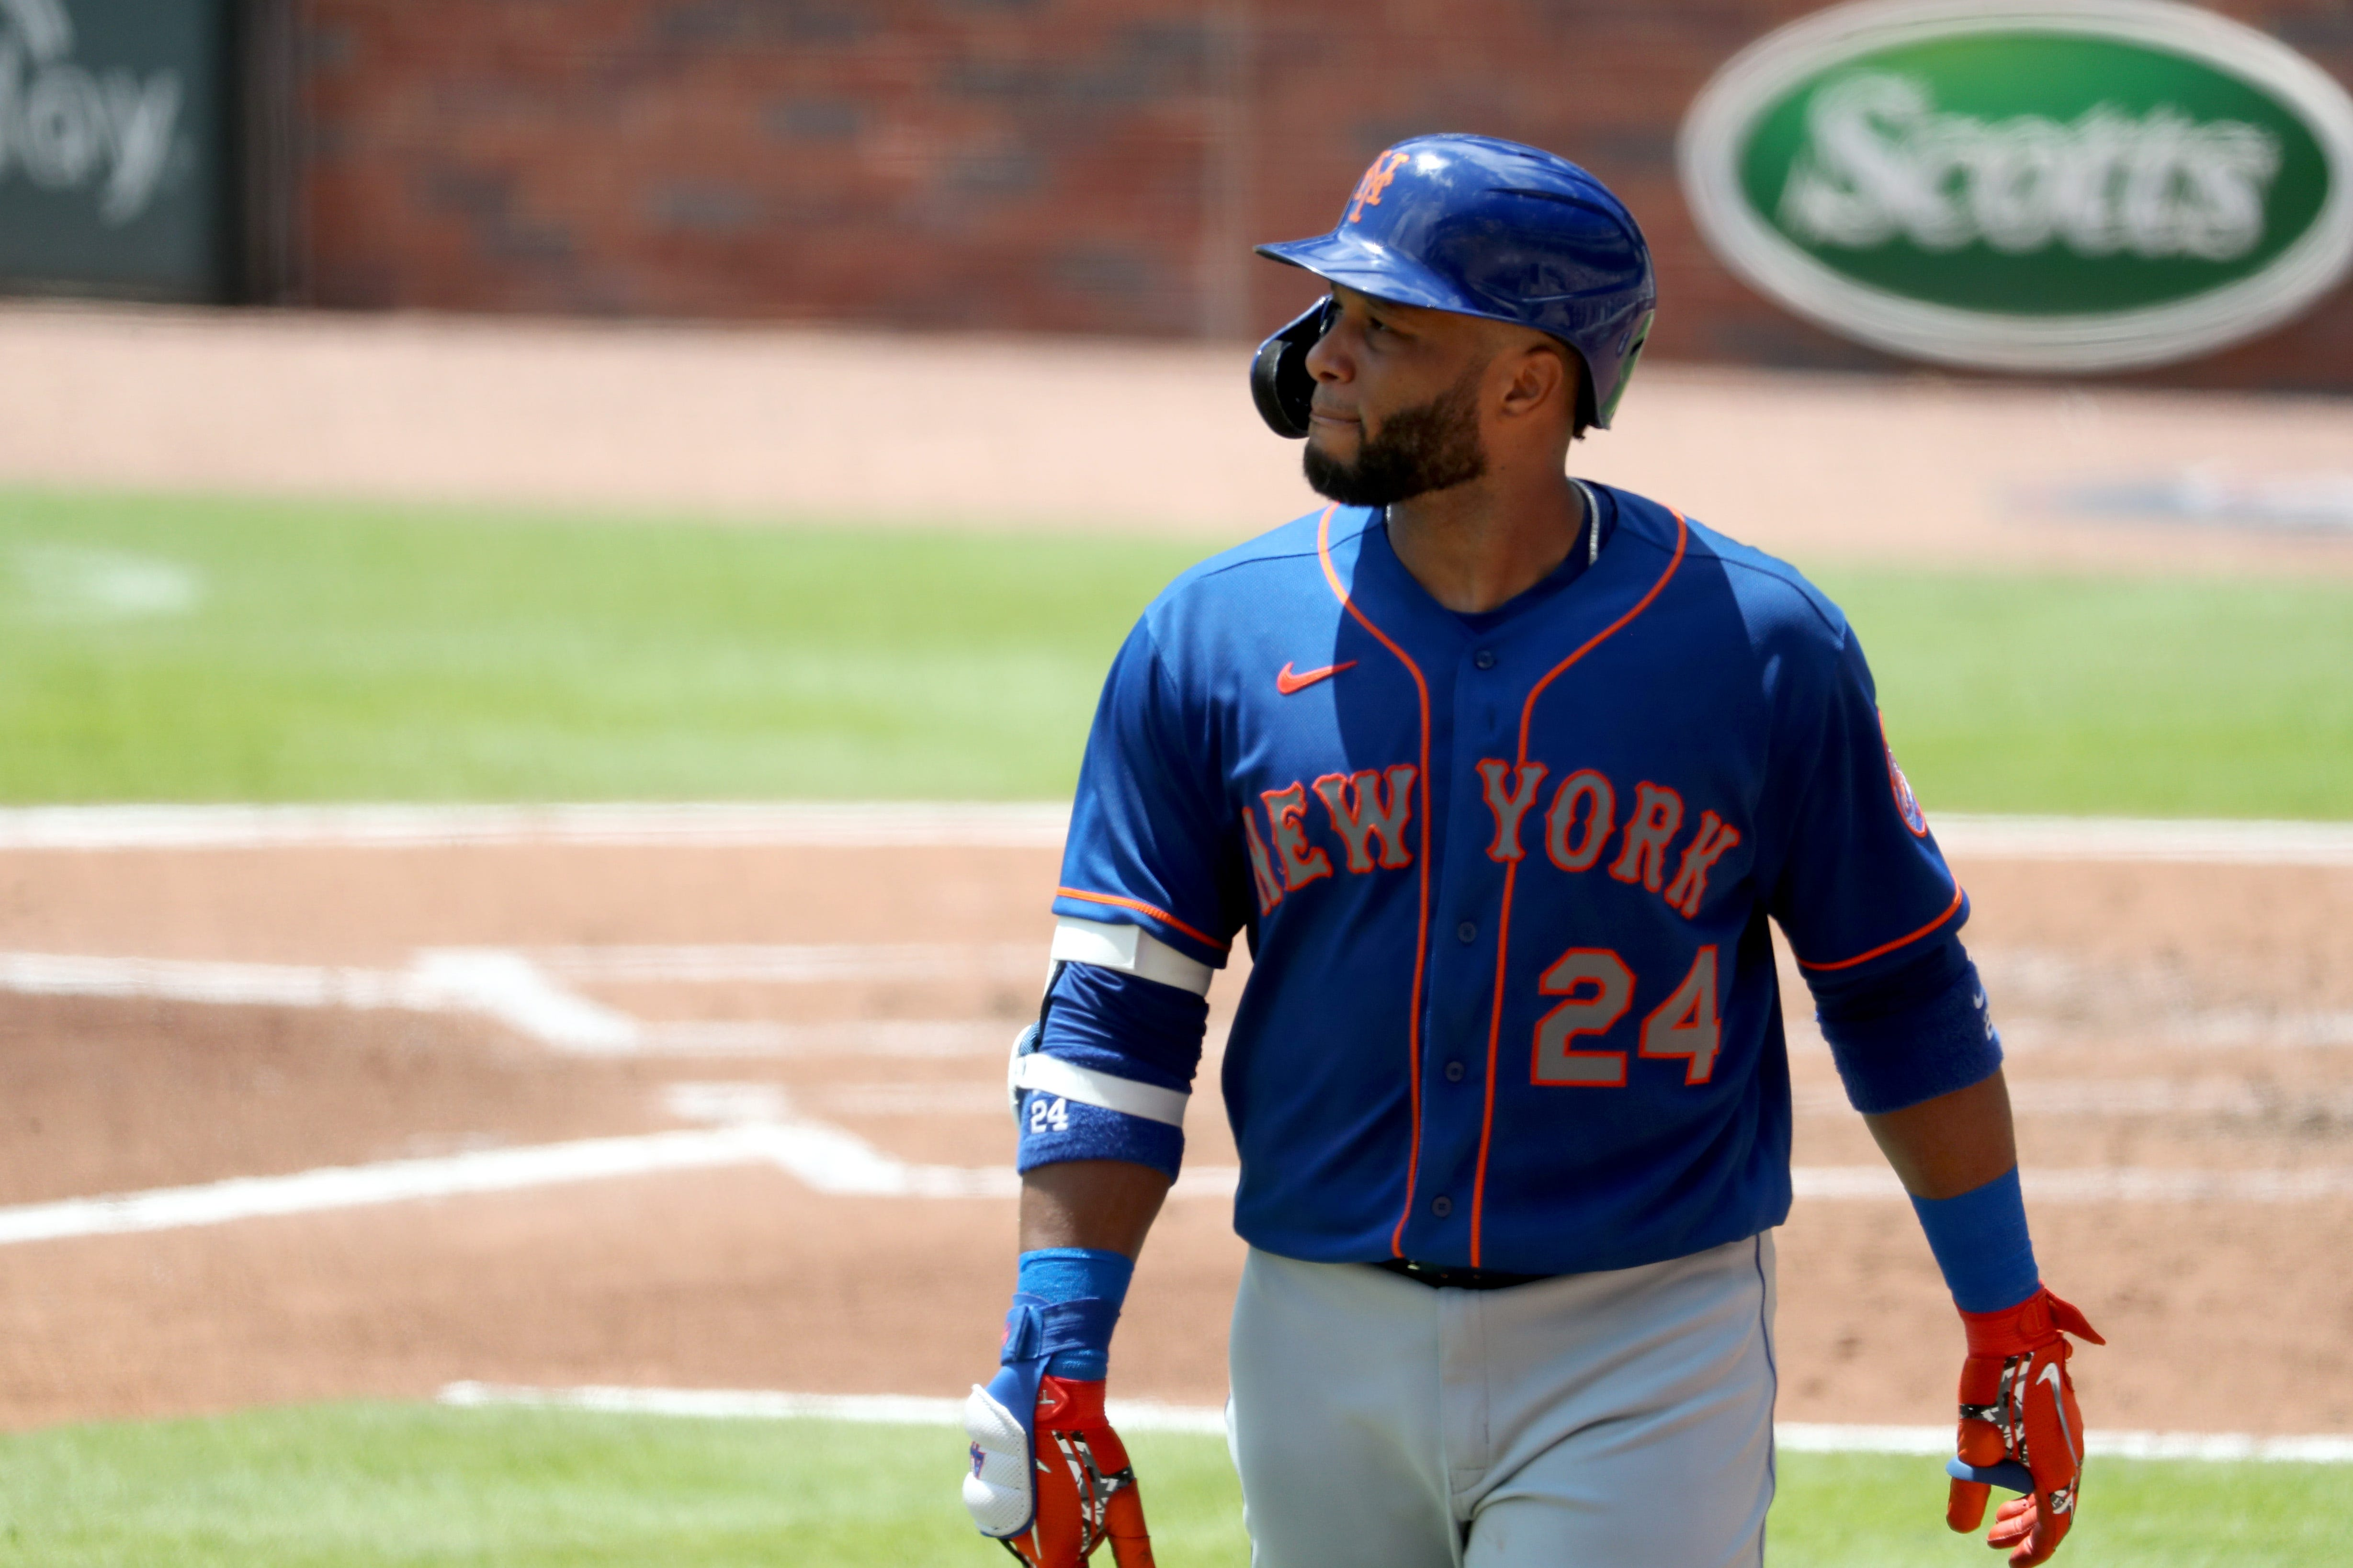 Mets' Robinson Cano suspended for 2021 season after positive PED test